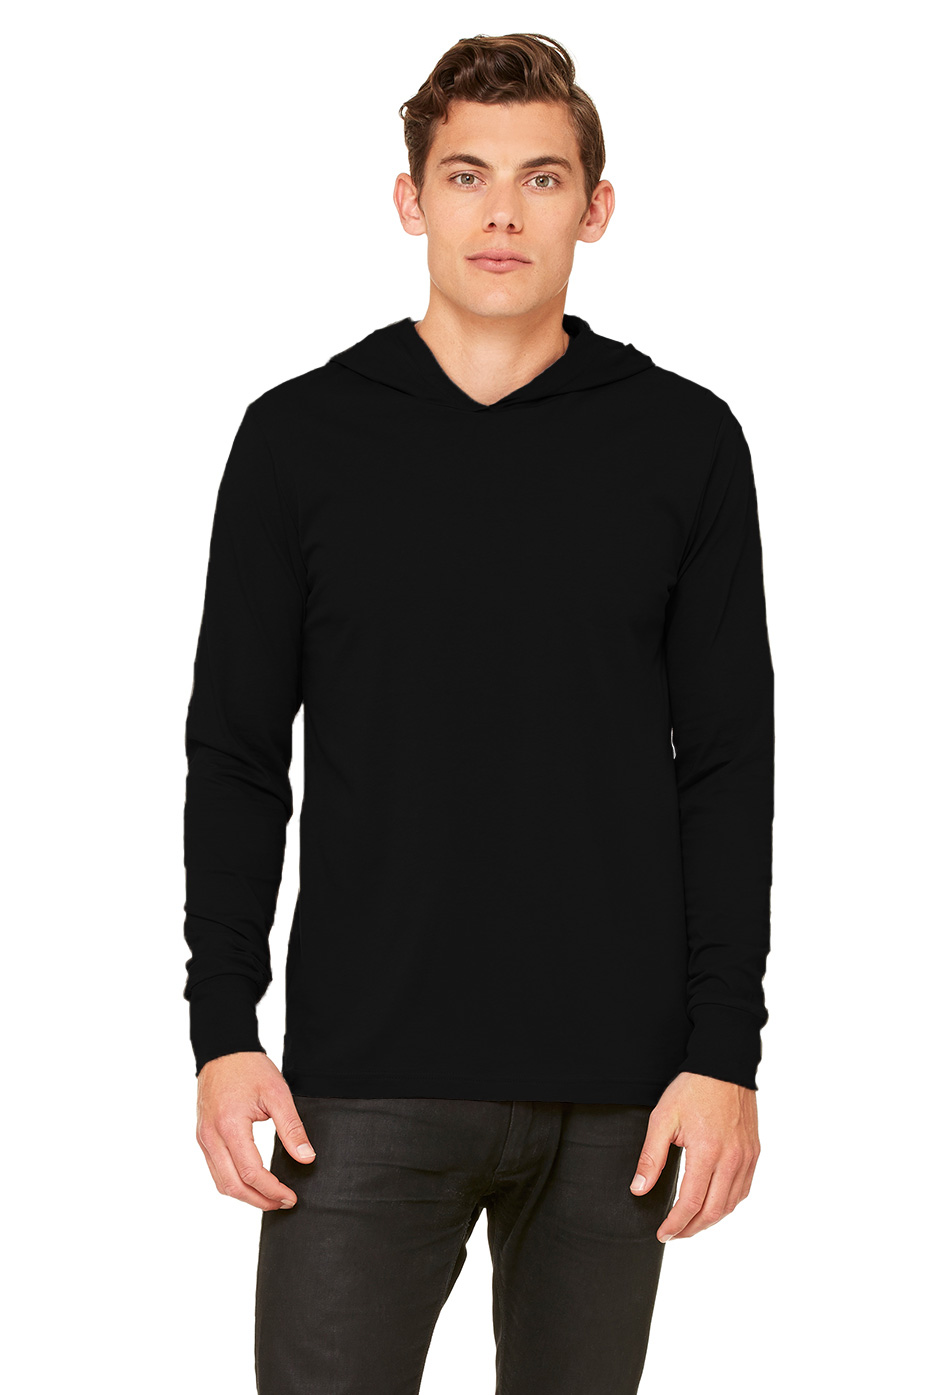 Black t shirt hoodie - Colors Available White